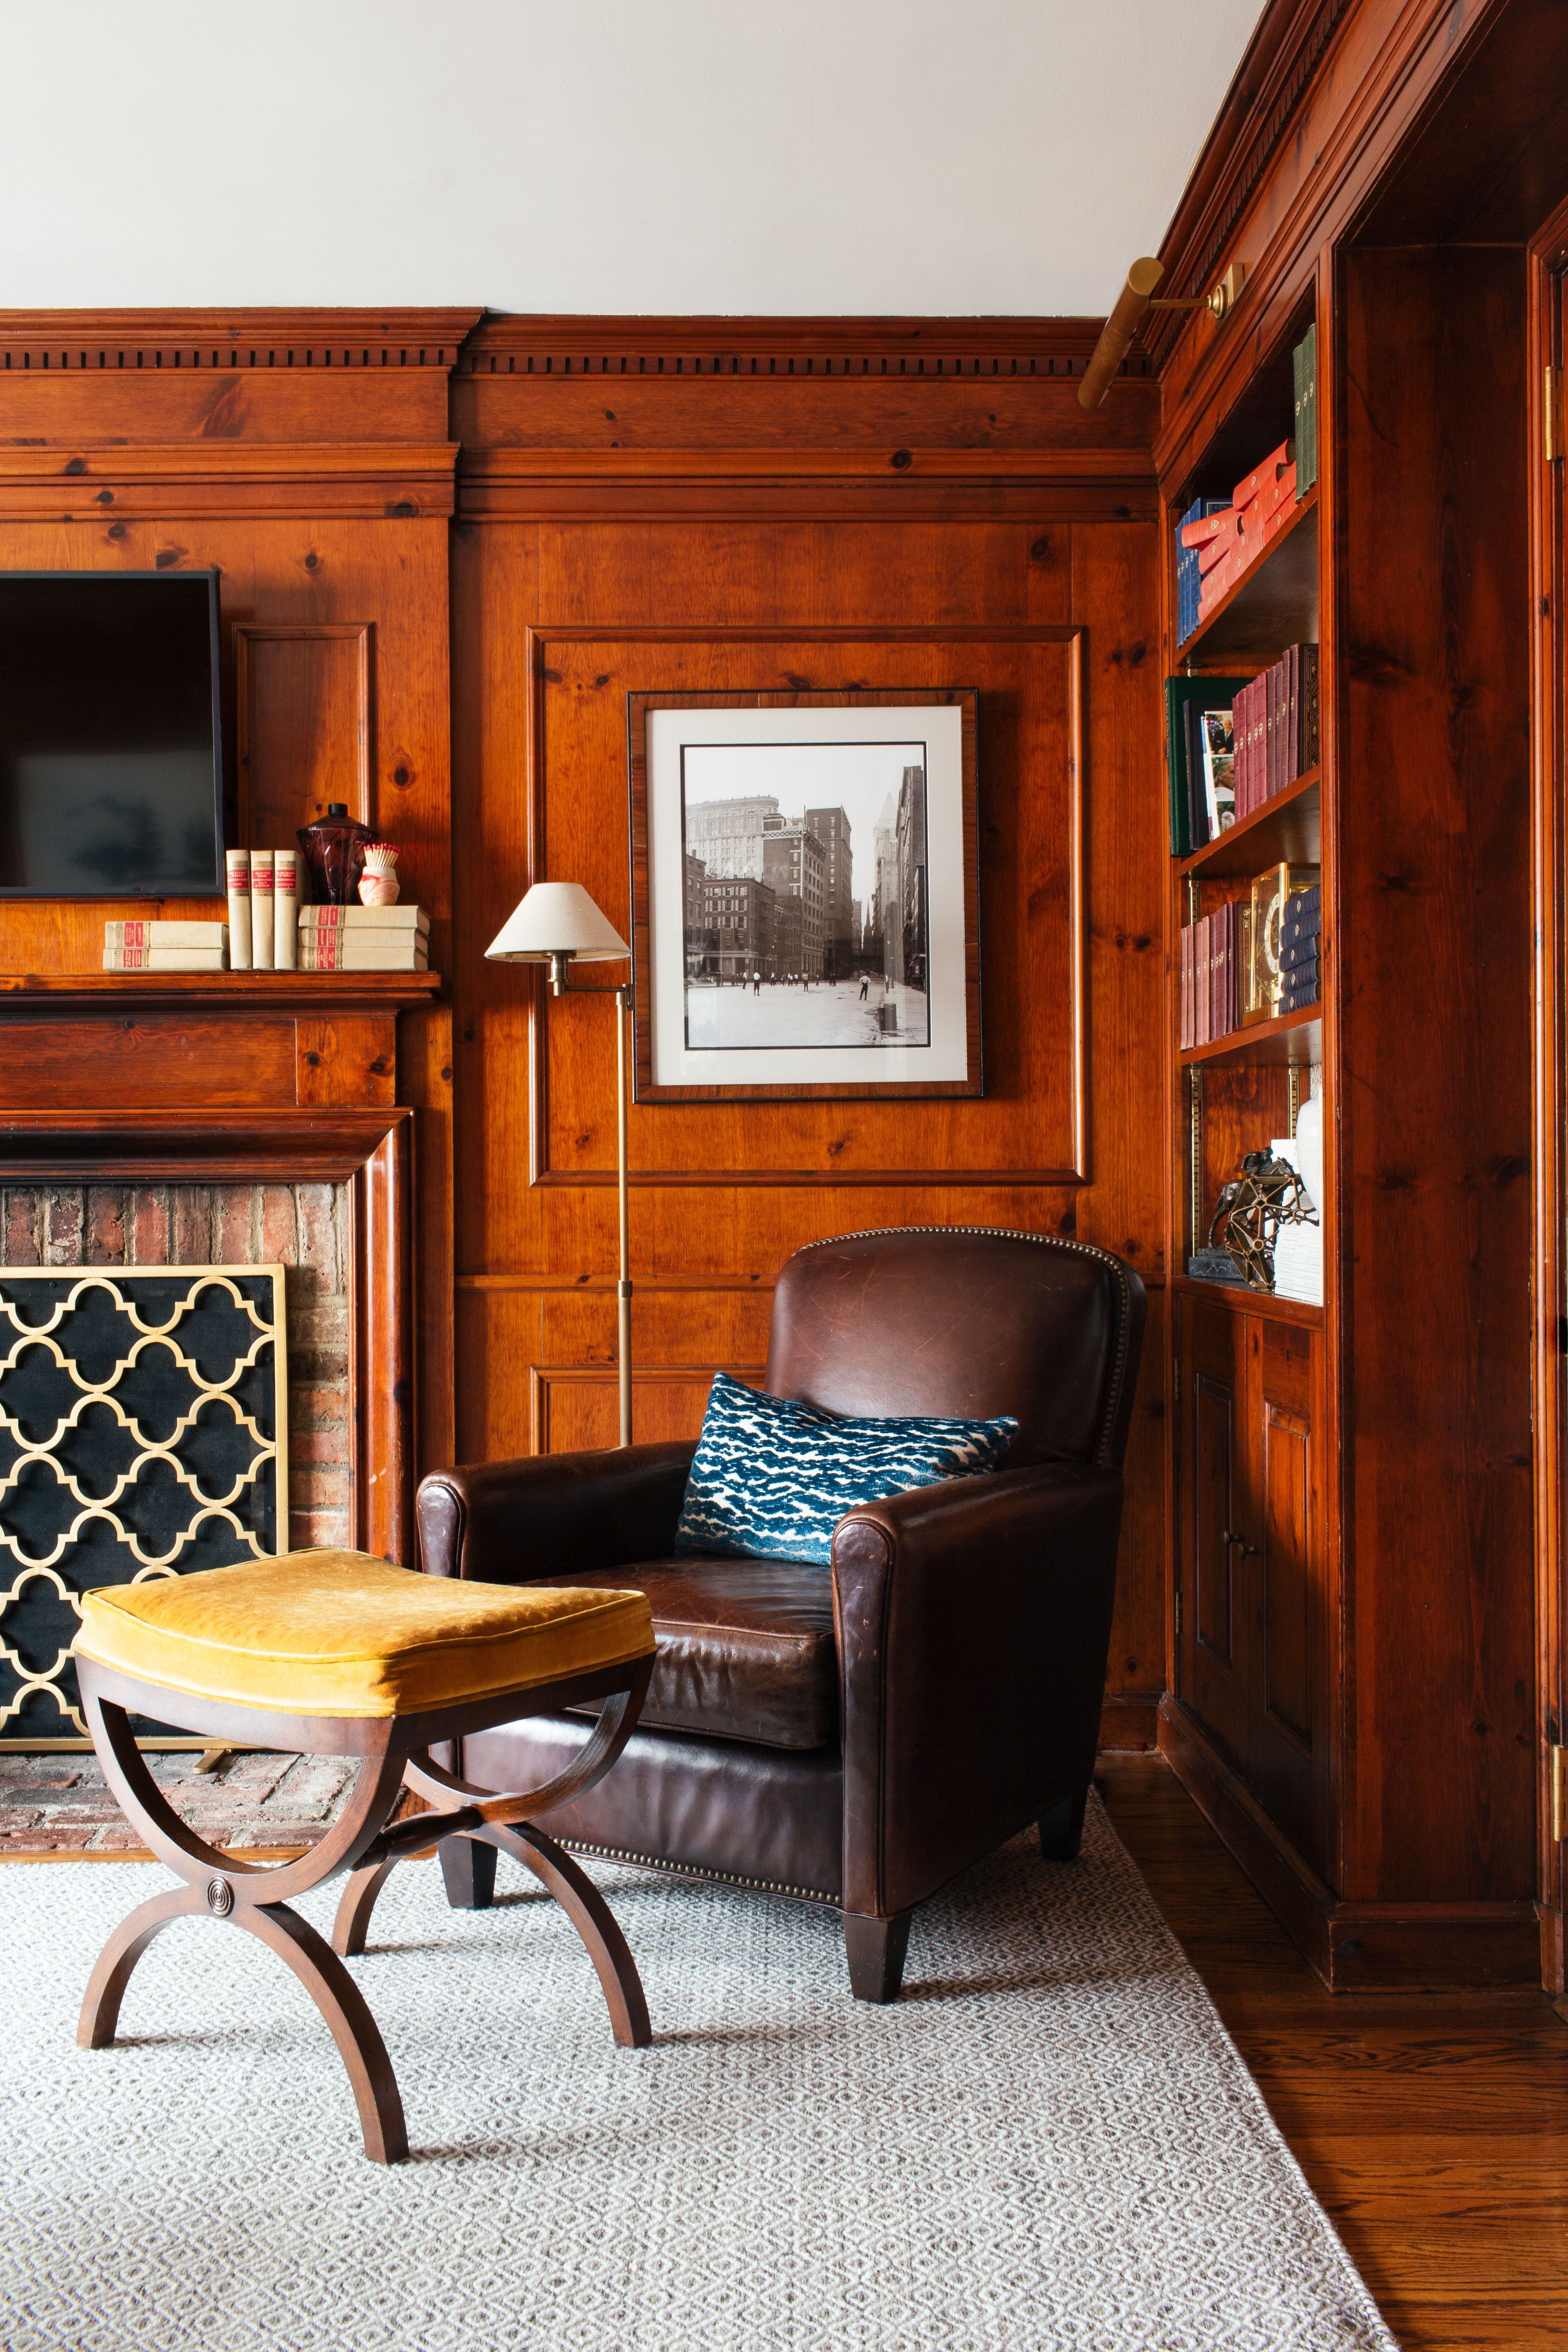 Wood Paneled Library: Library // Wood Paneled Walls // Brown Leather Chair